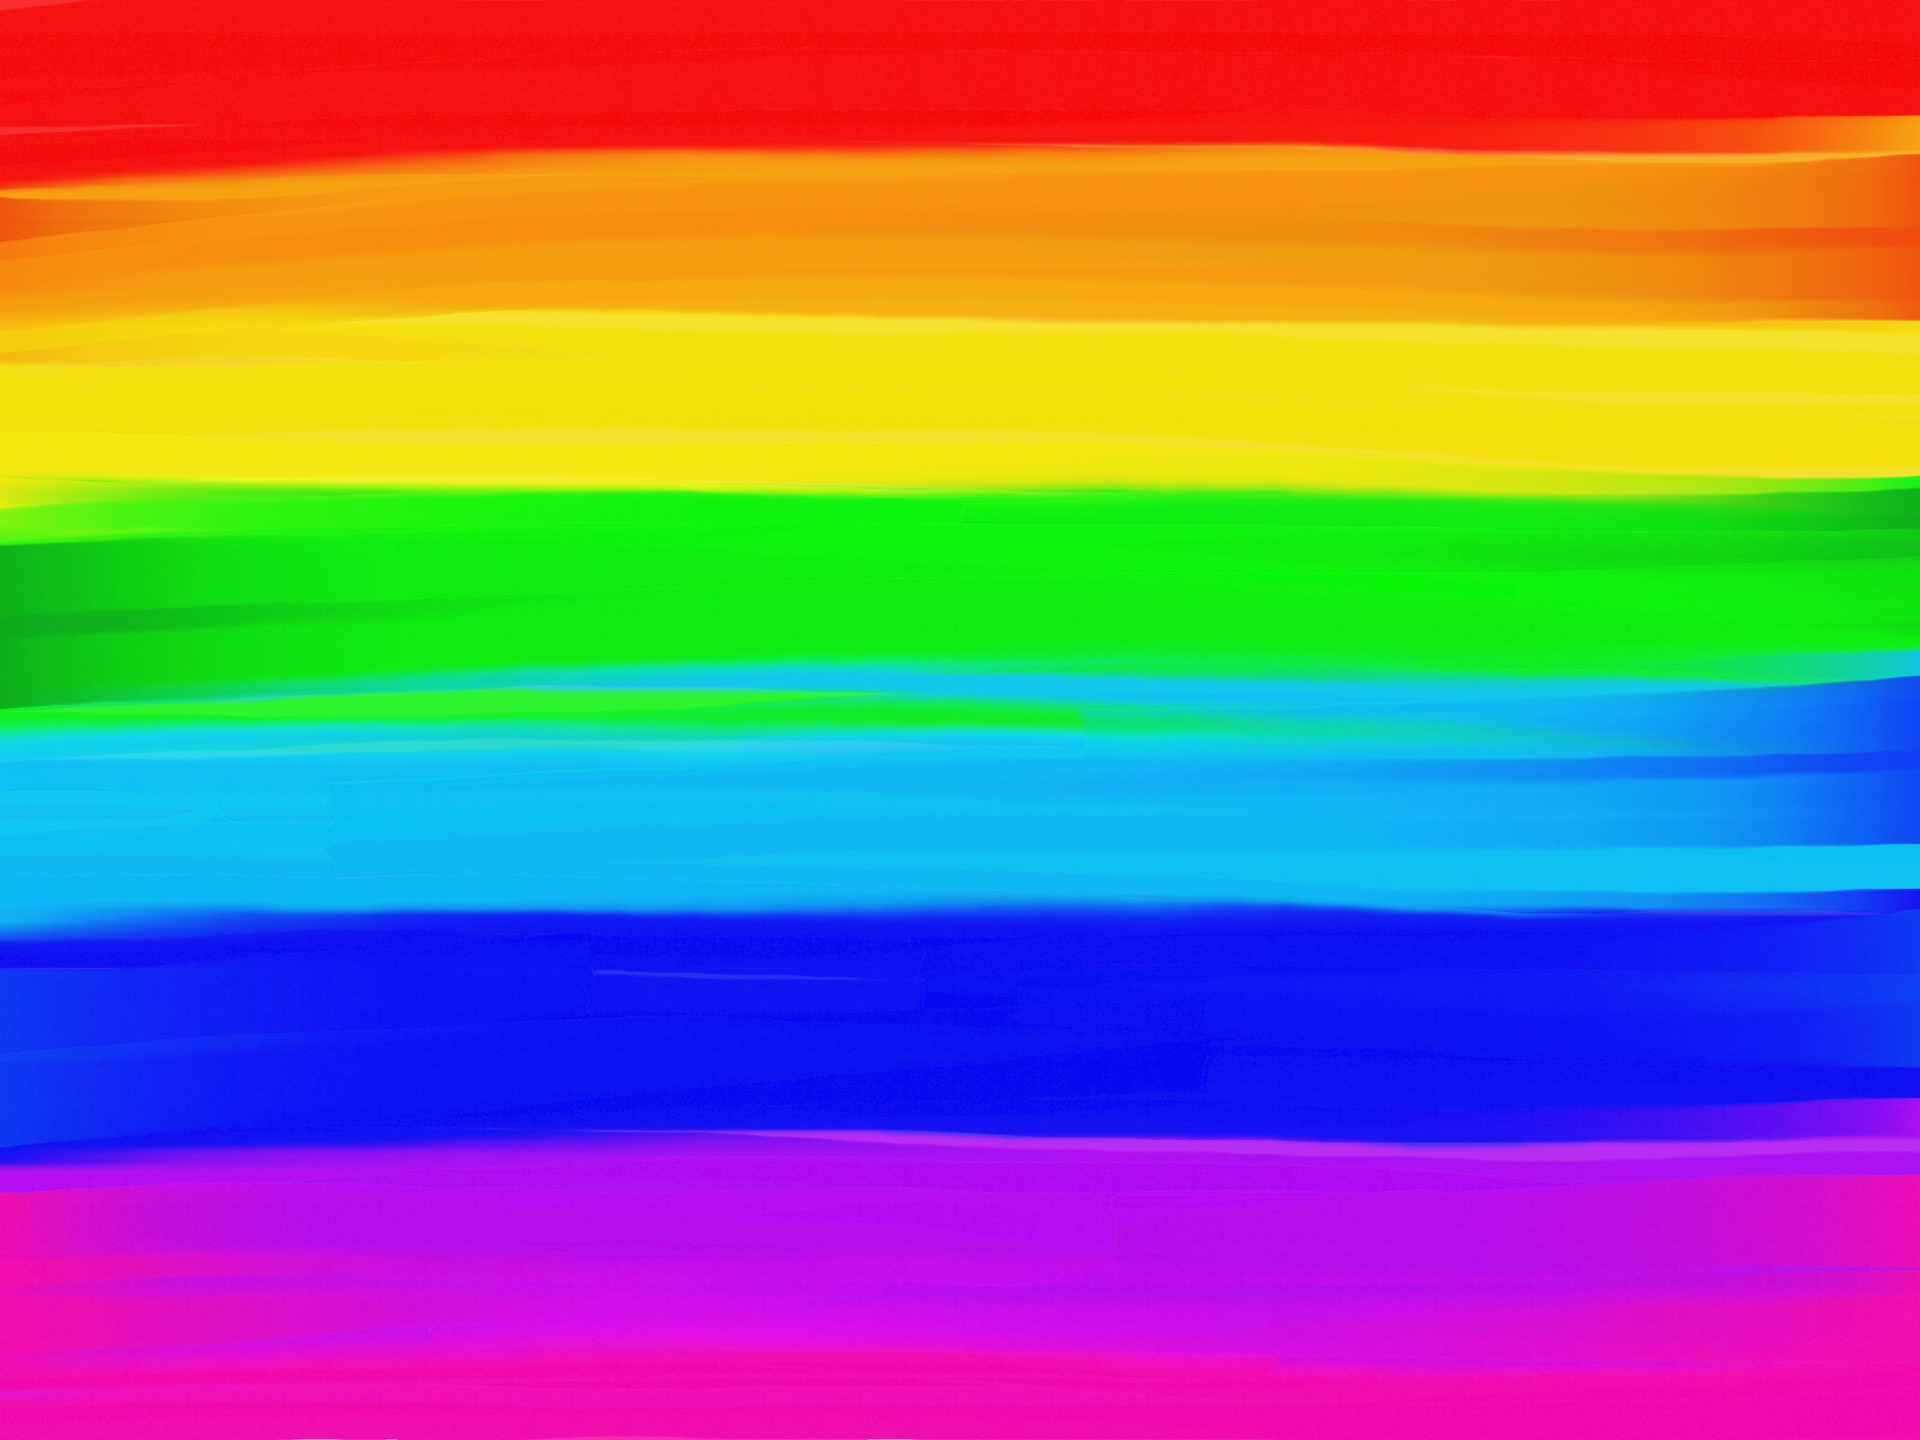 Fb Cute Wallpaper Rainbow Stripes Free Stock Photo Public Domain Pictures